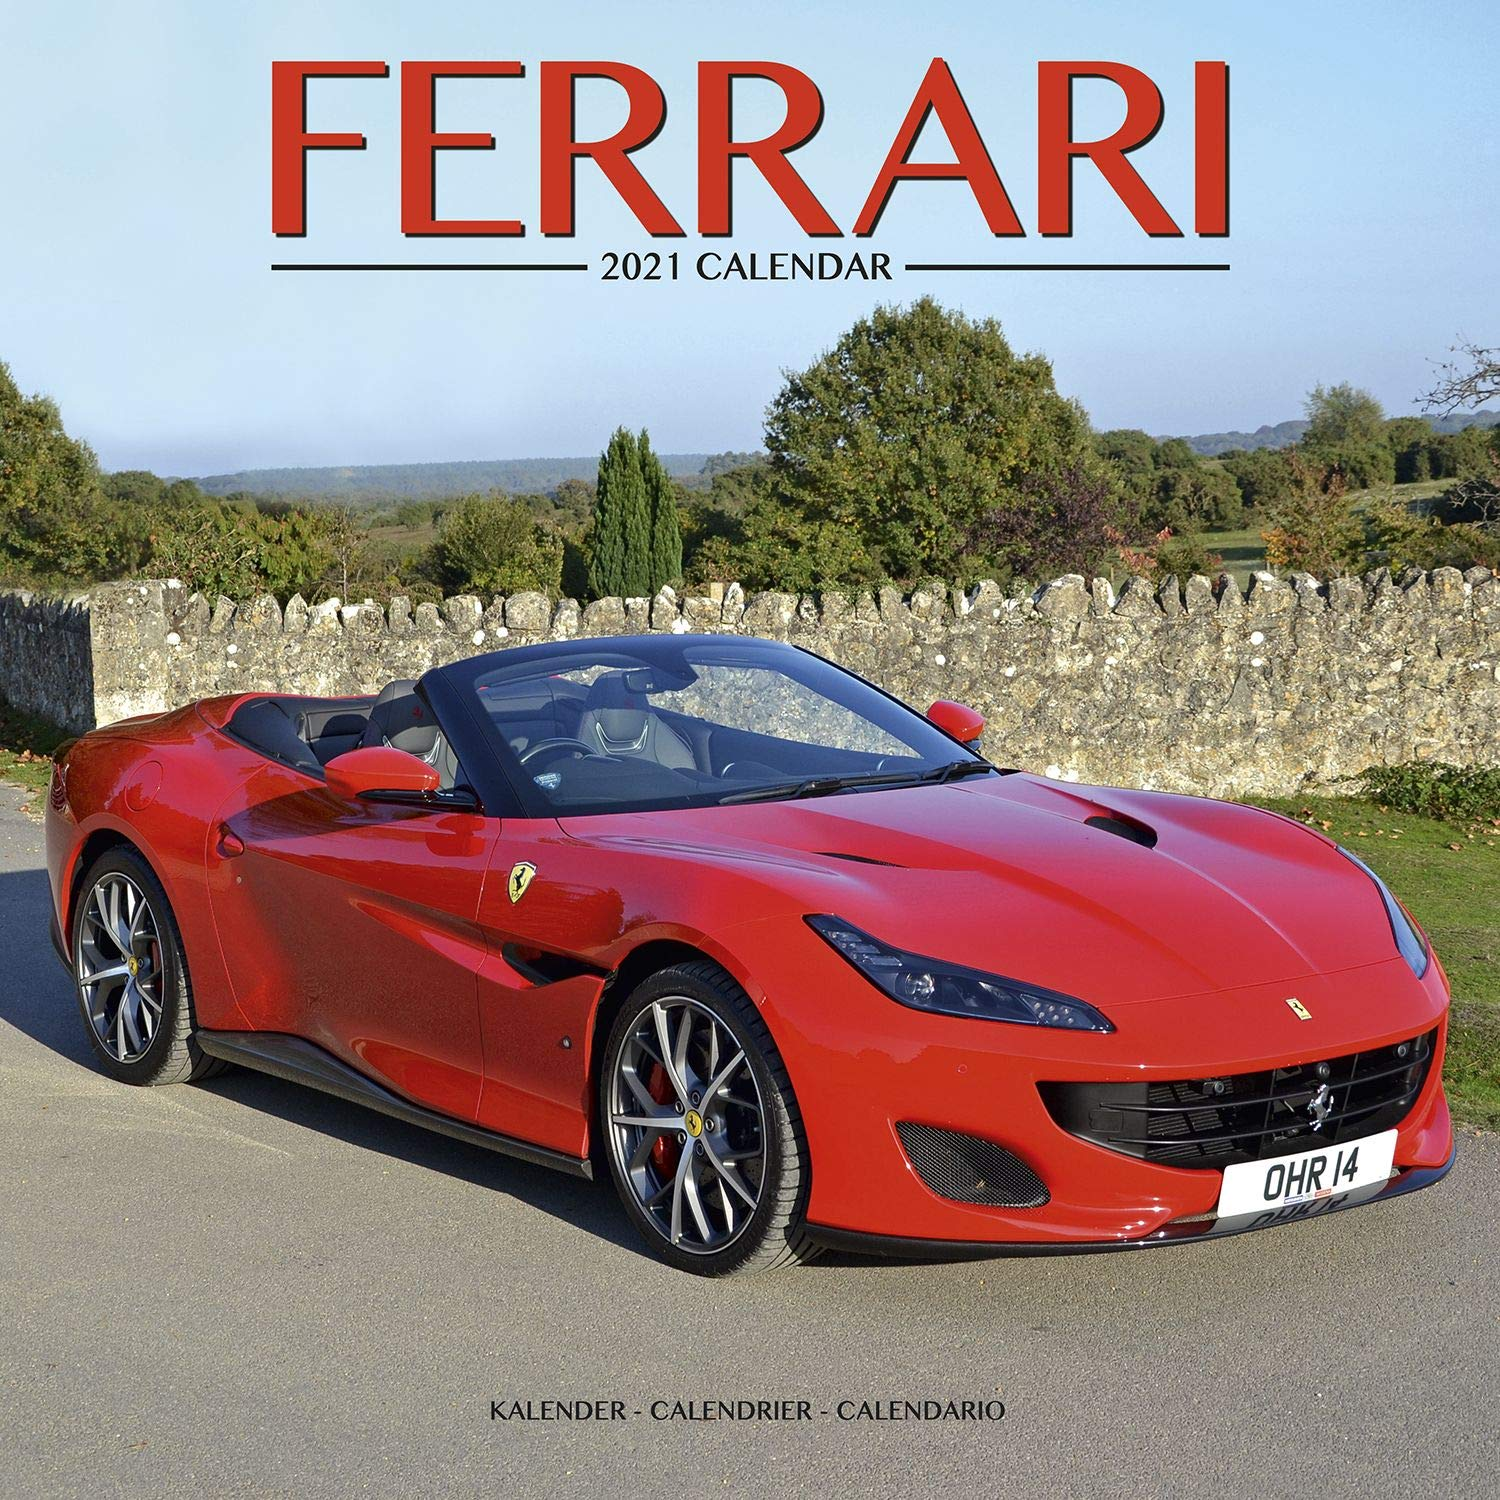 Ferrari Calendar  Calendars 2020   2021 Wall Calendars   Car